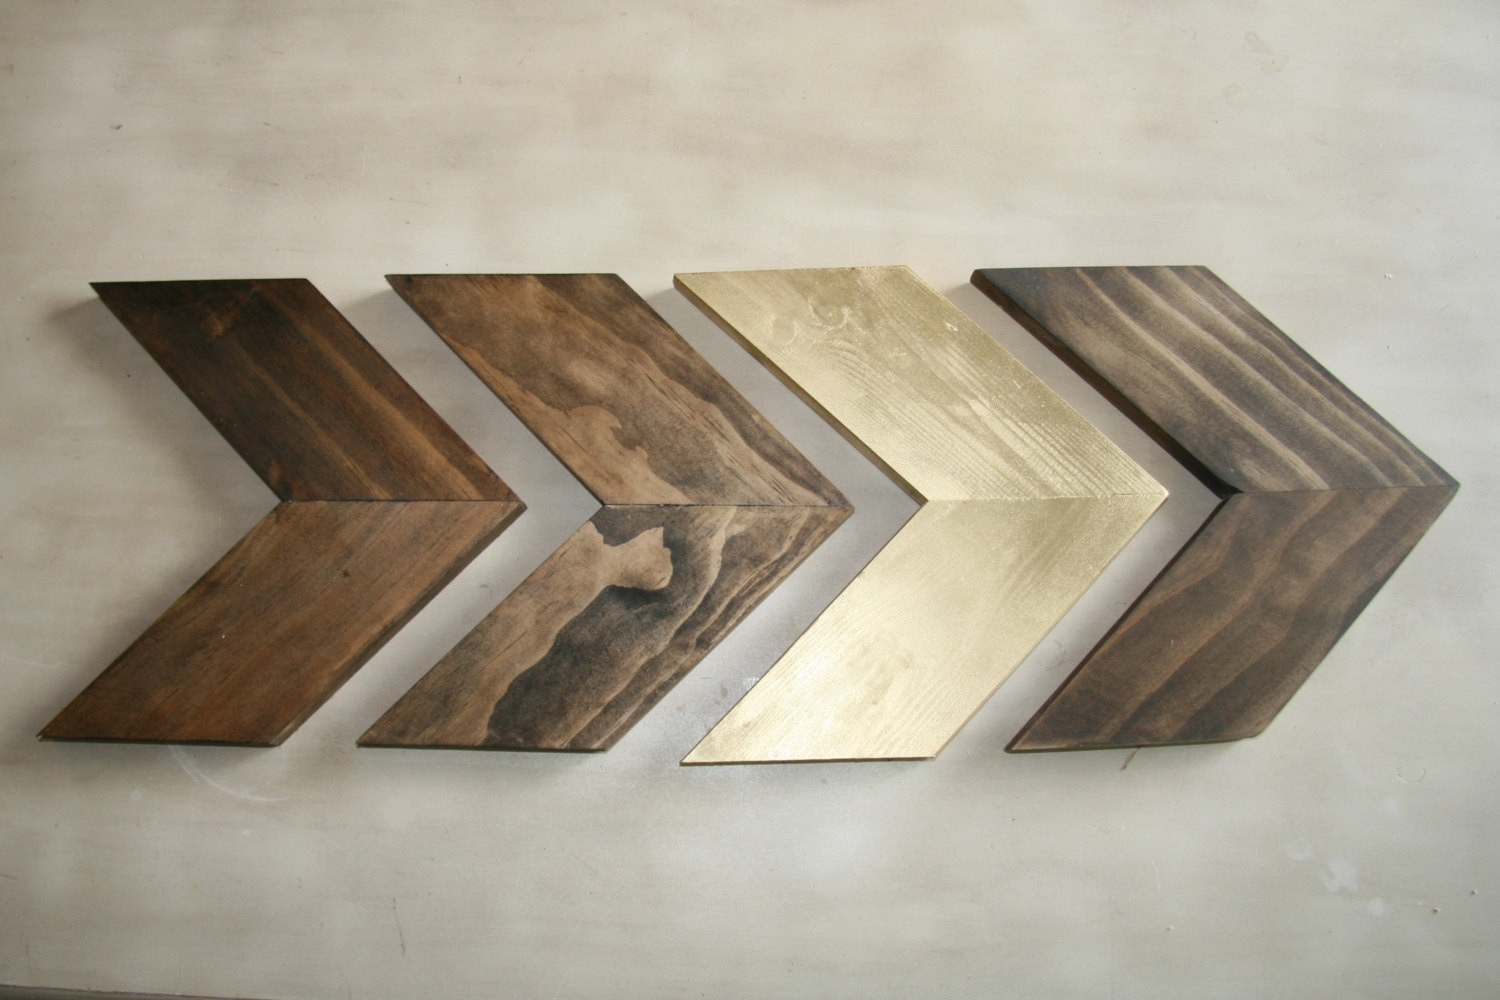 Chevron Wall Decor Best Of Wood Chevron Arrows Wood Arrow Wall Art with regard to Chevron Wall Art (Image 10 of 20)